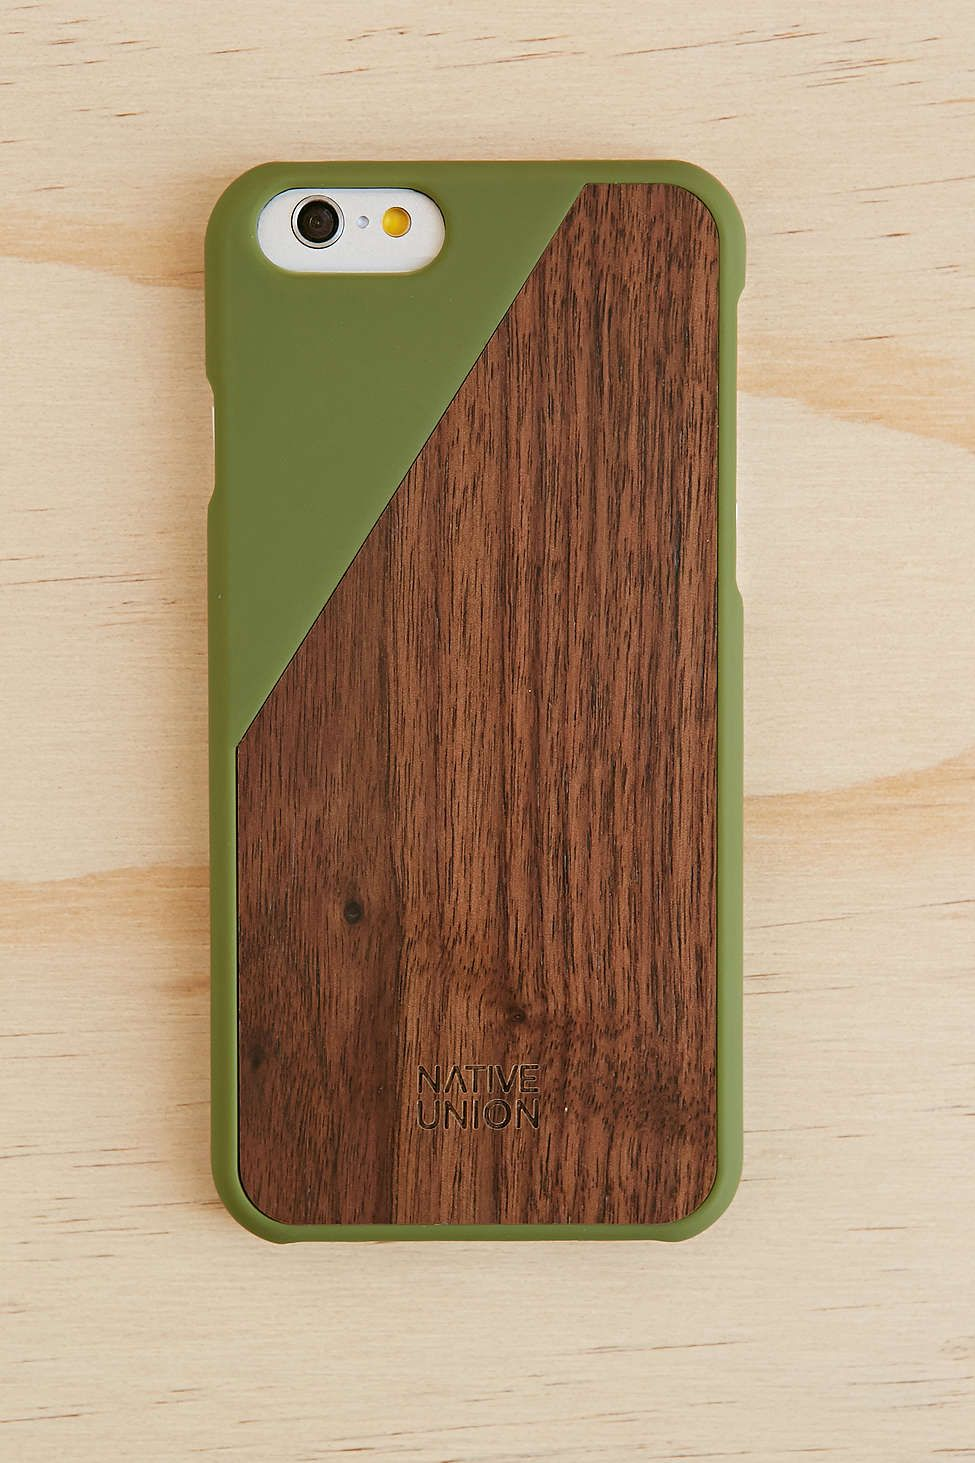 Native Union Clic Wooden Iphone 6 Case Urban Outers